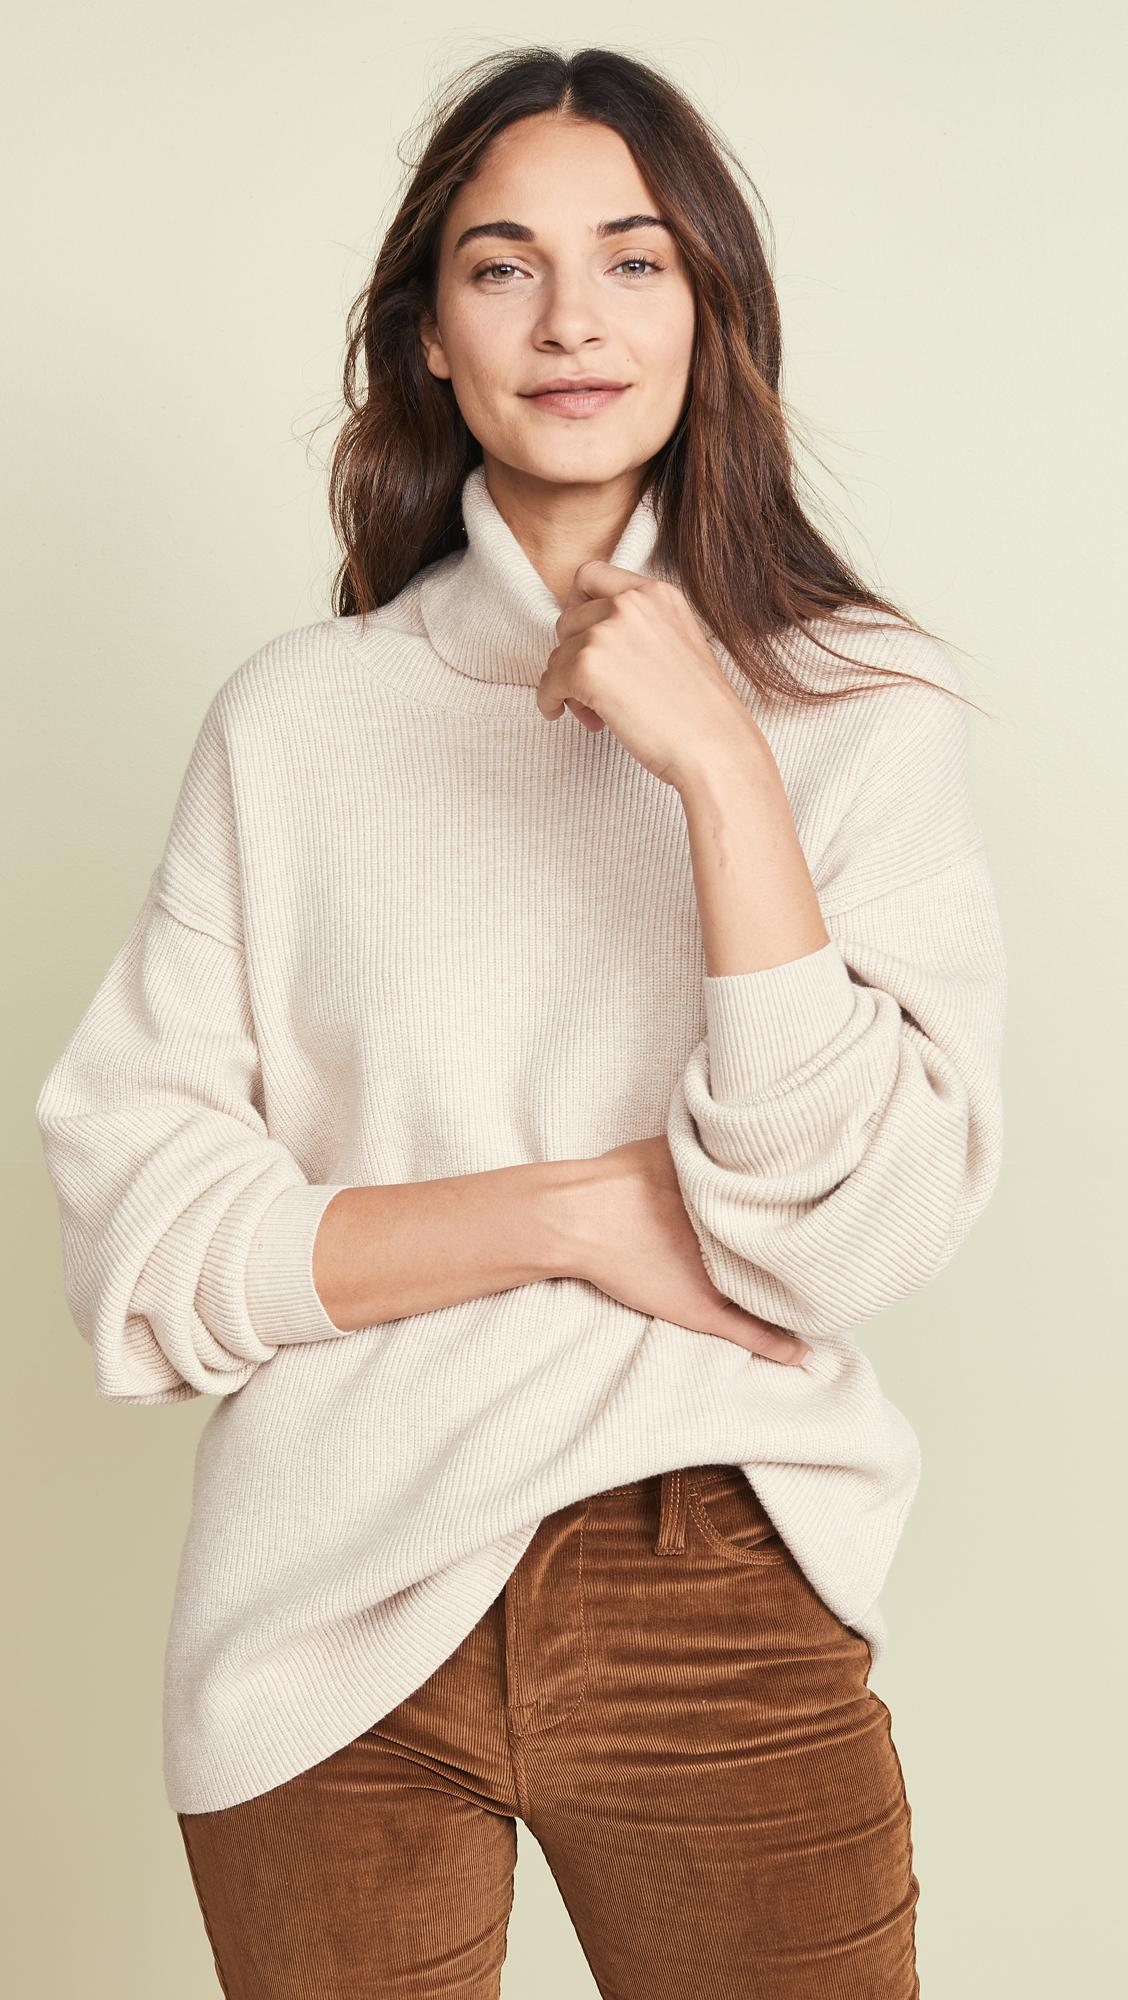 adecae7426d1 Free People Softly Structured Tunic Sweater in White - Lyst